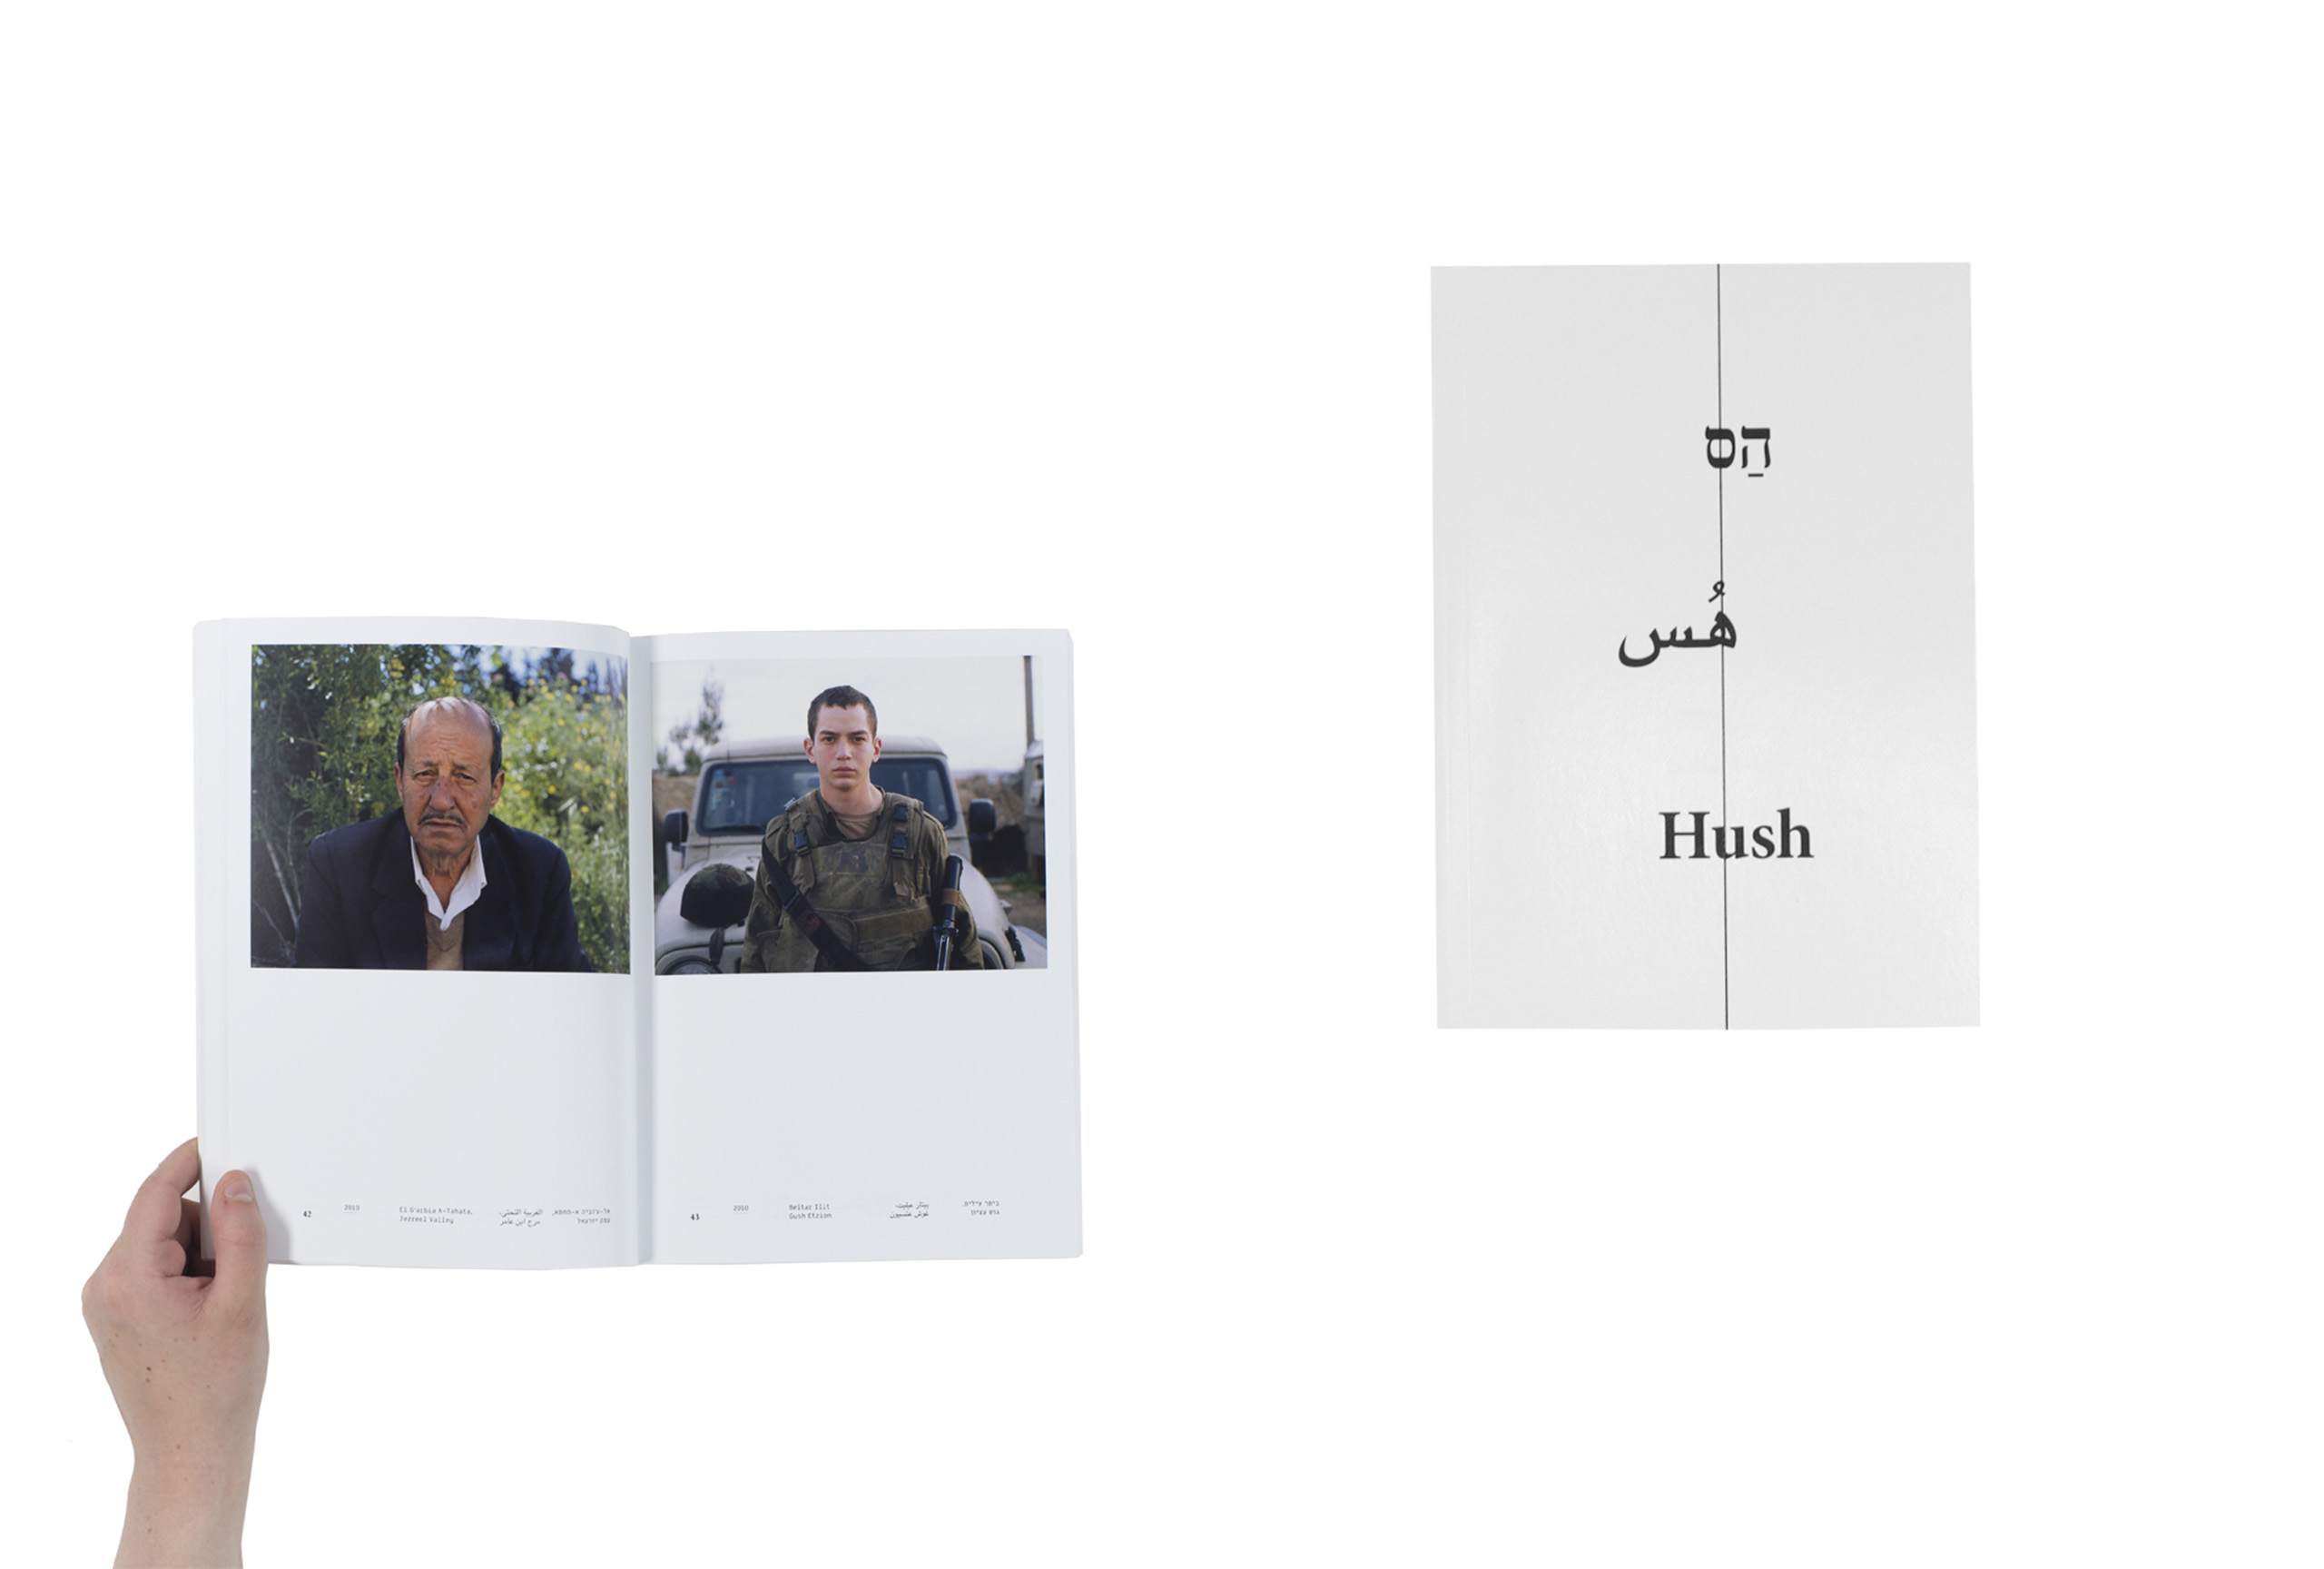 Hush: Israel Palestine 2000–2014 by Noa Ben-Shalom, published by Sternthal Books. Short-listed title for First PhotoBook.